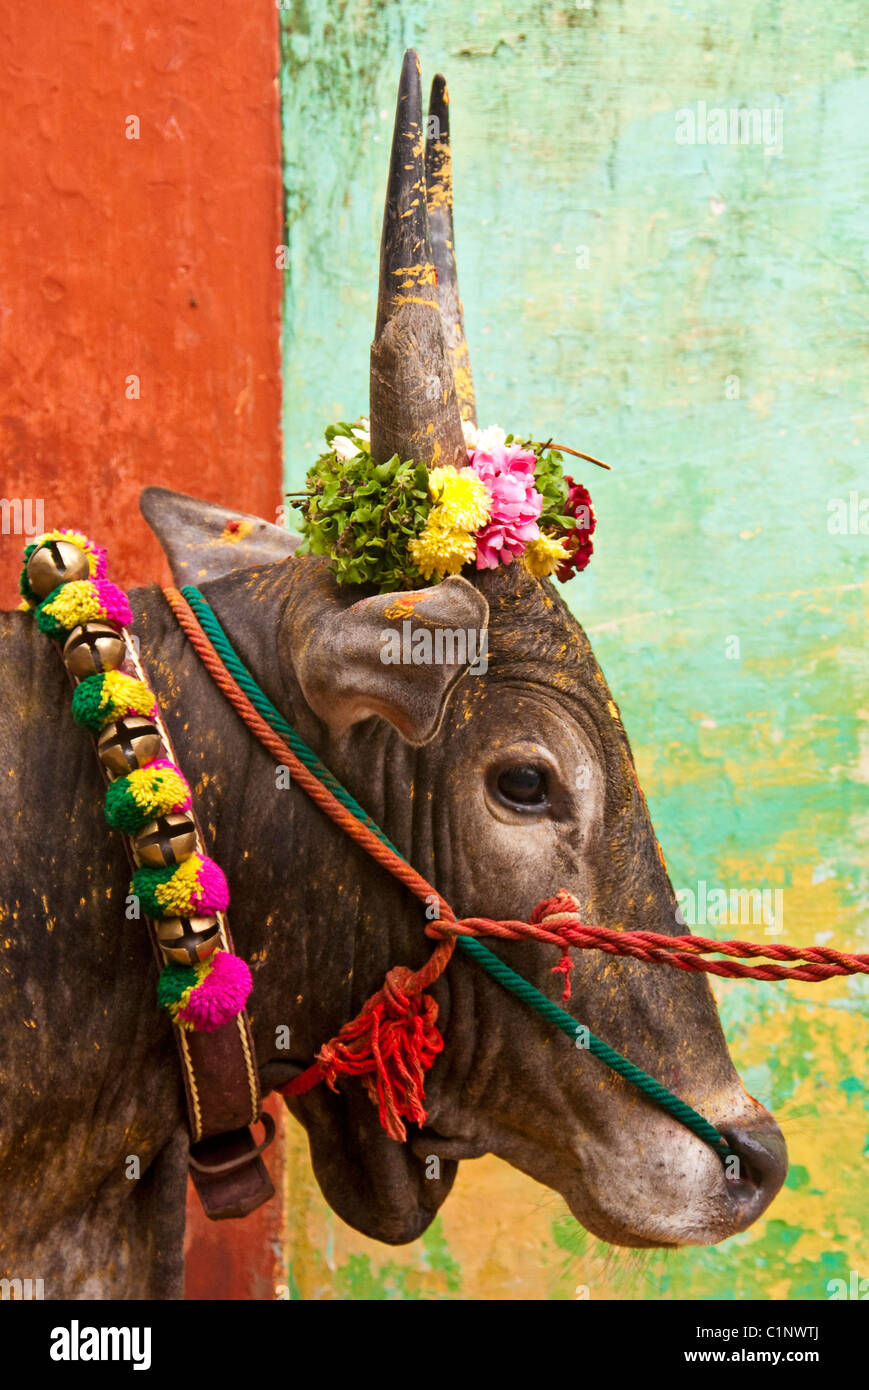 Portrait of a colorful jallikattu bull decorated for pongal festival stock image